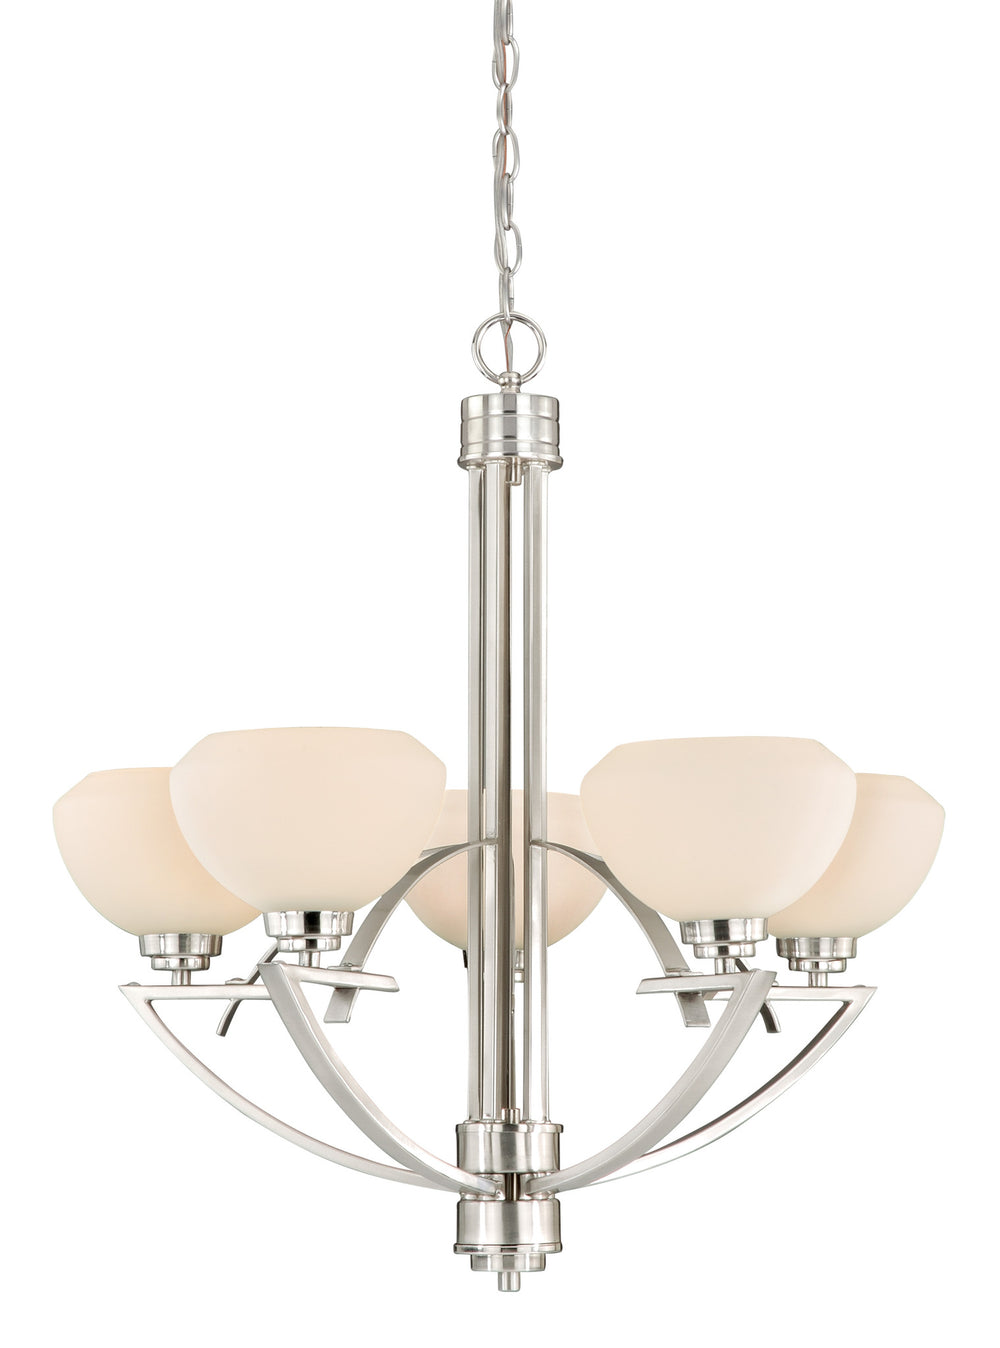 Buy SA-CHU005SN Vaxcel Solna 5L Chandelier Satin Nickel from LightingOriginals.ca